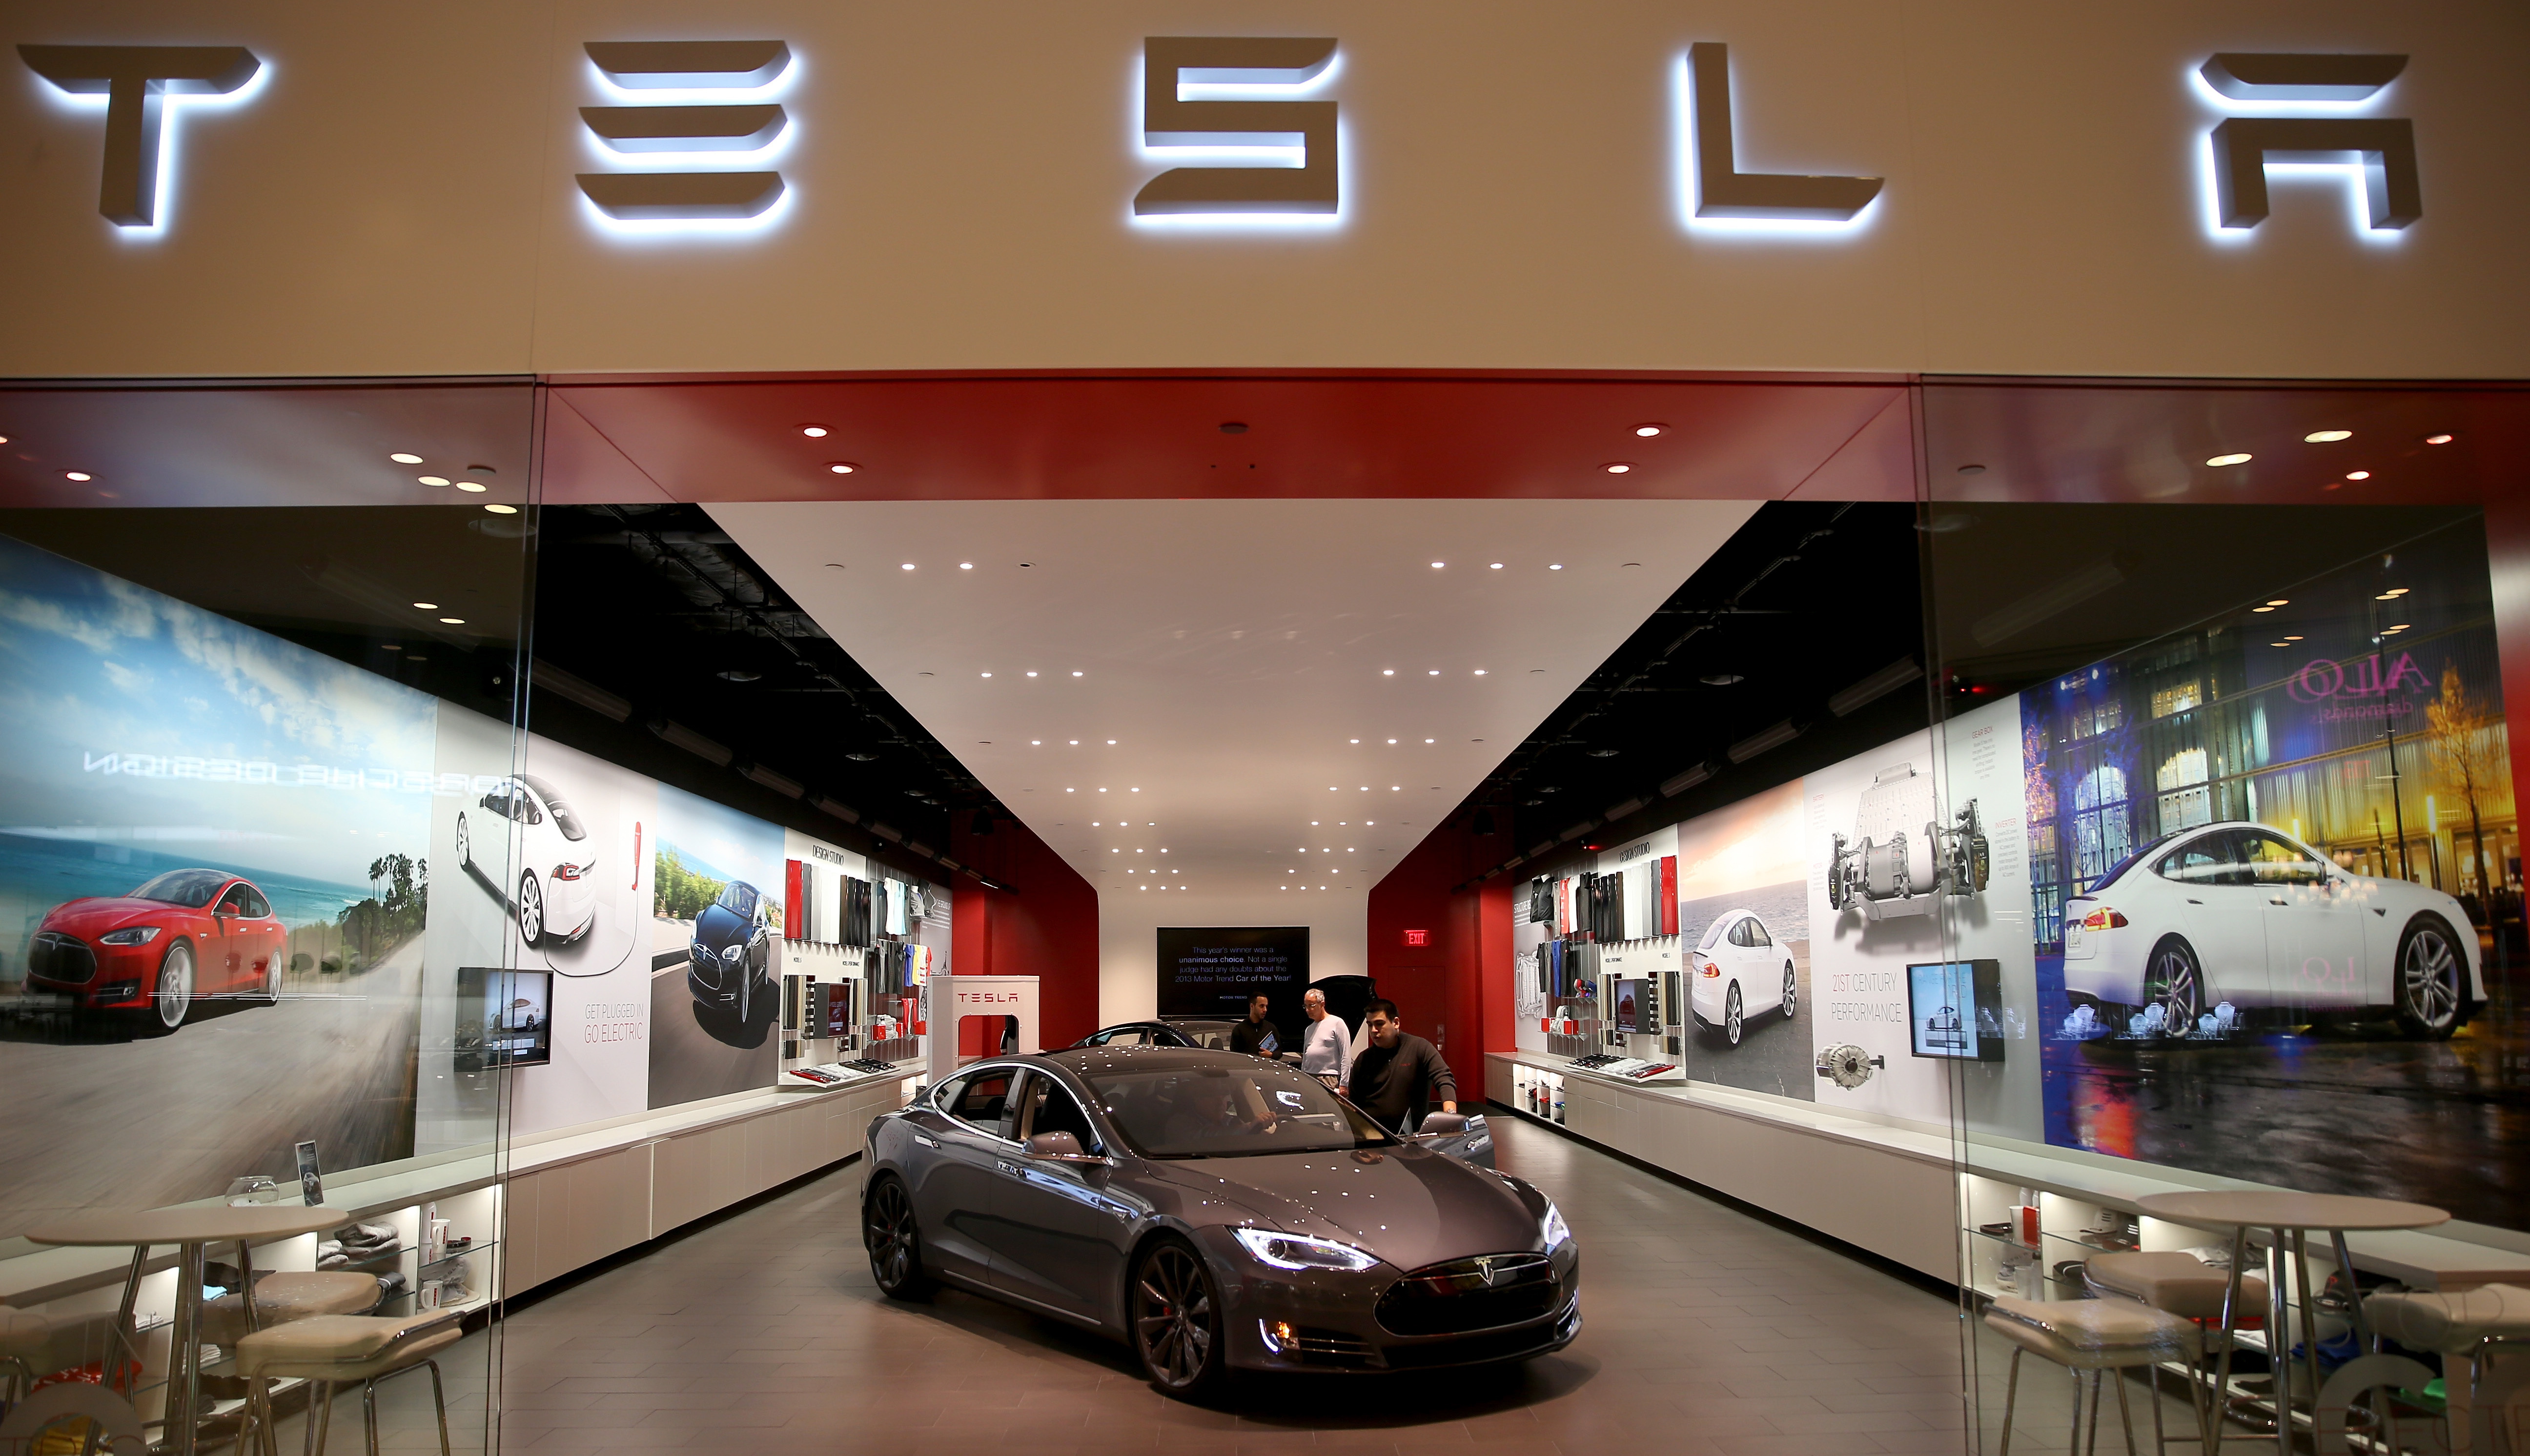 tesla swings at direct sale bans as bigger fight awaits